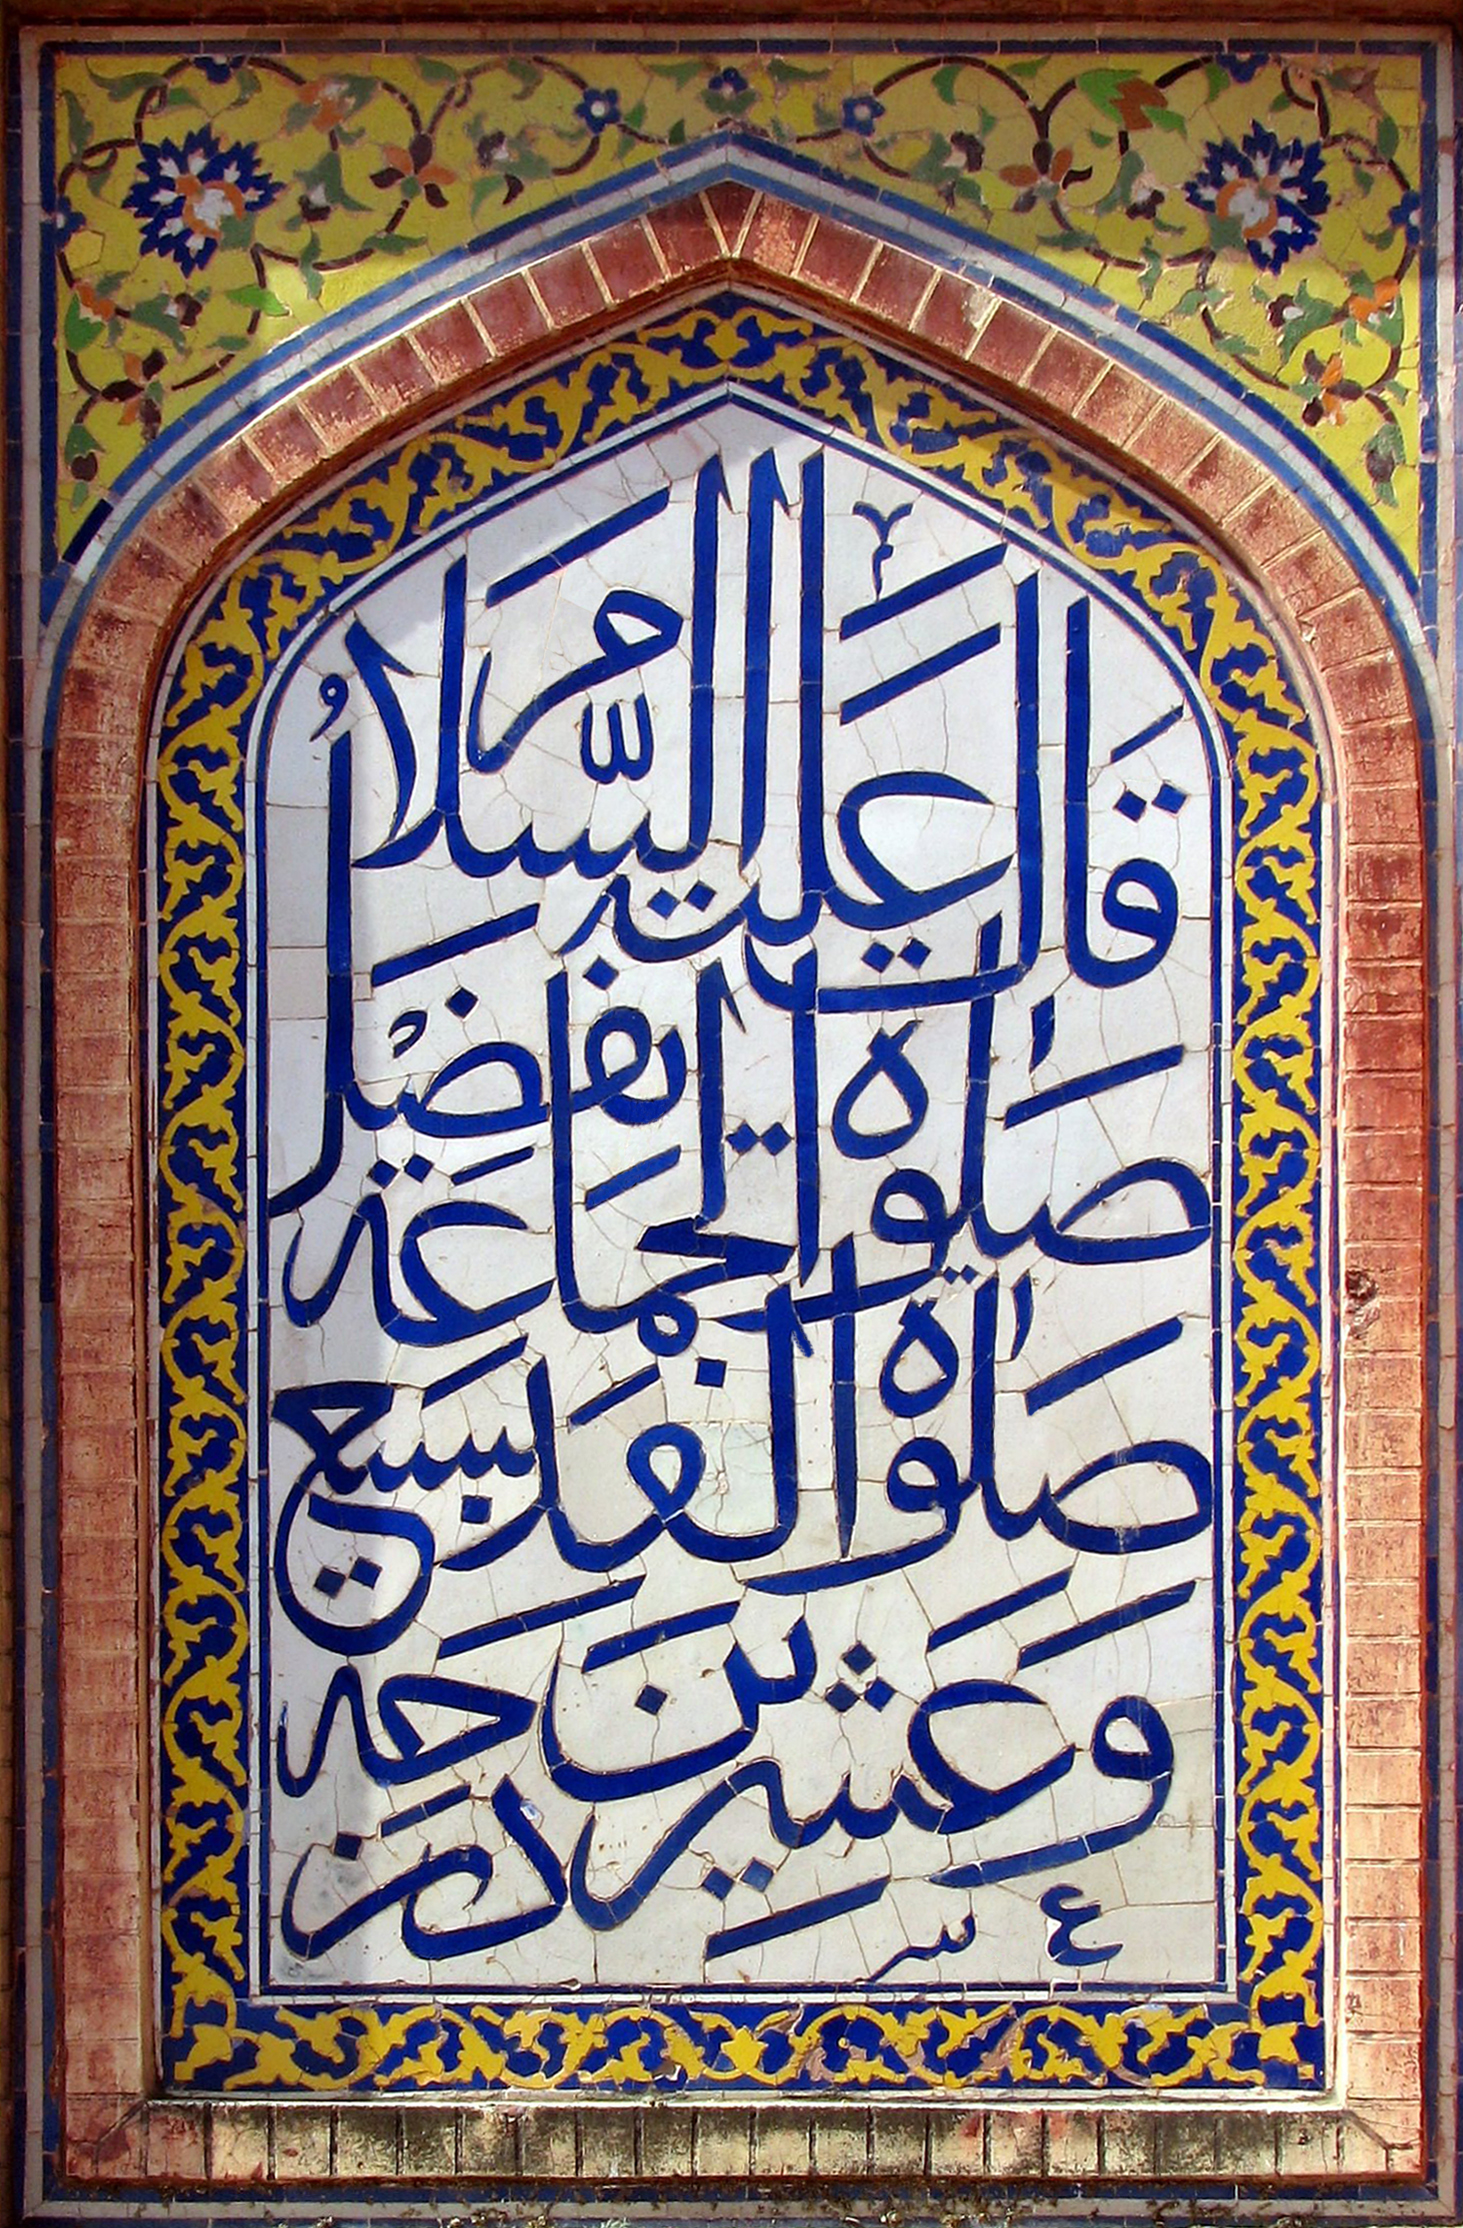 https://upload.wikimedia.org/wikipedia/commons/4/4c/Arabic_Calligraphy_at_Wazir_Khan_Mosque-corrected.jpg